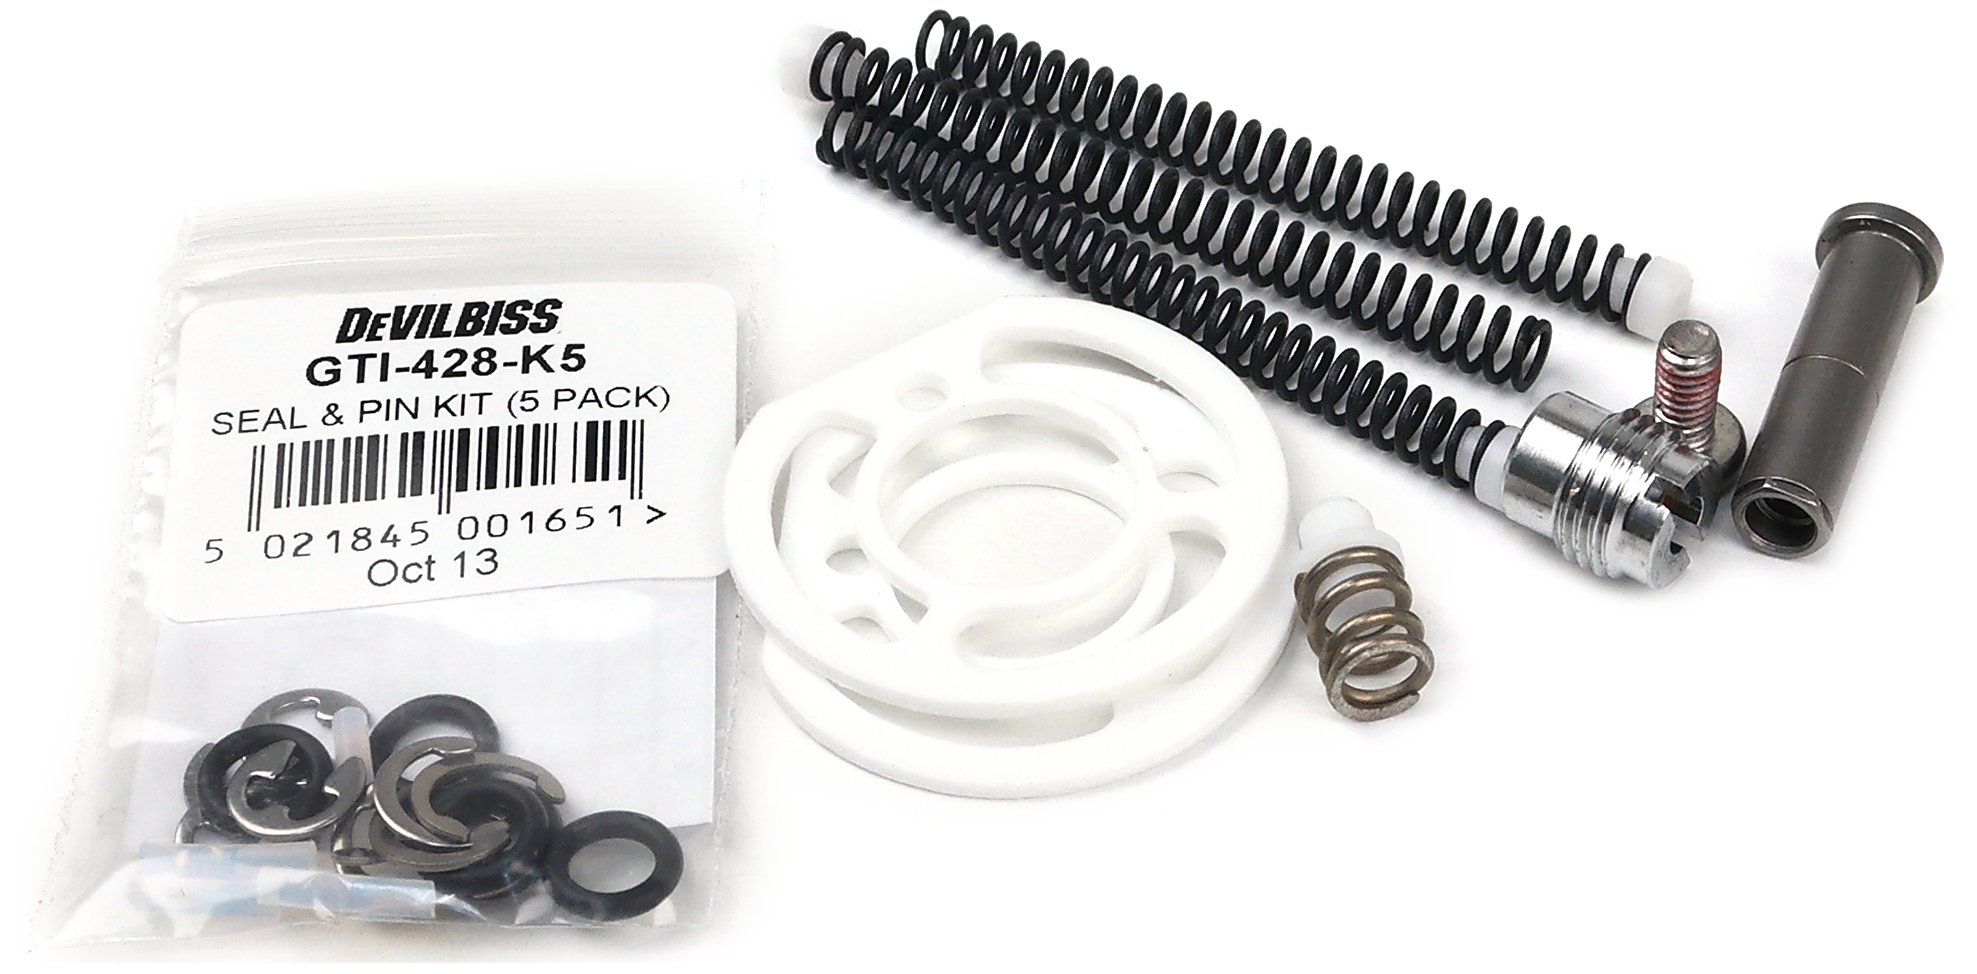 Tekna 703536 Repair Kit for Prolite Spray Guns